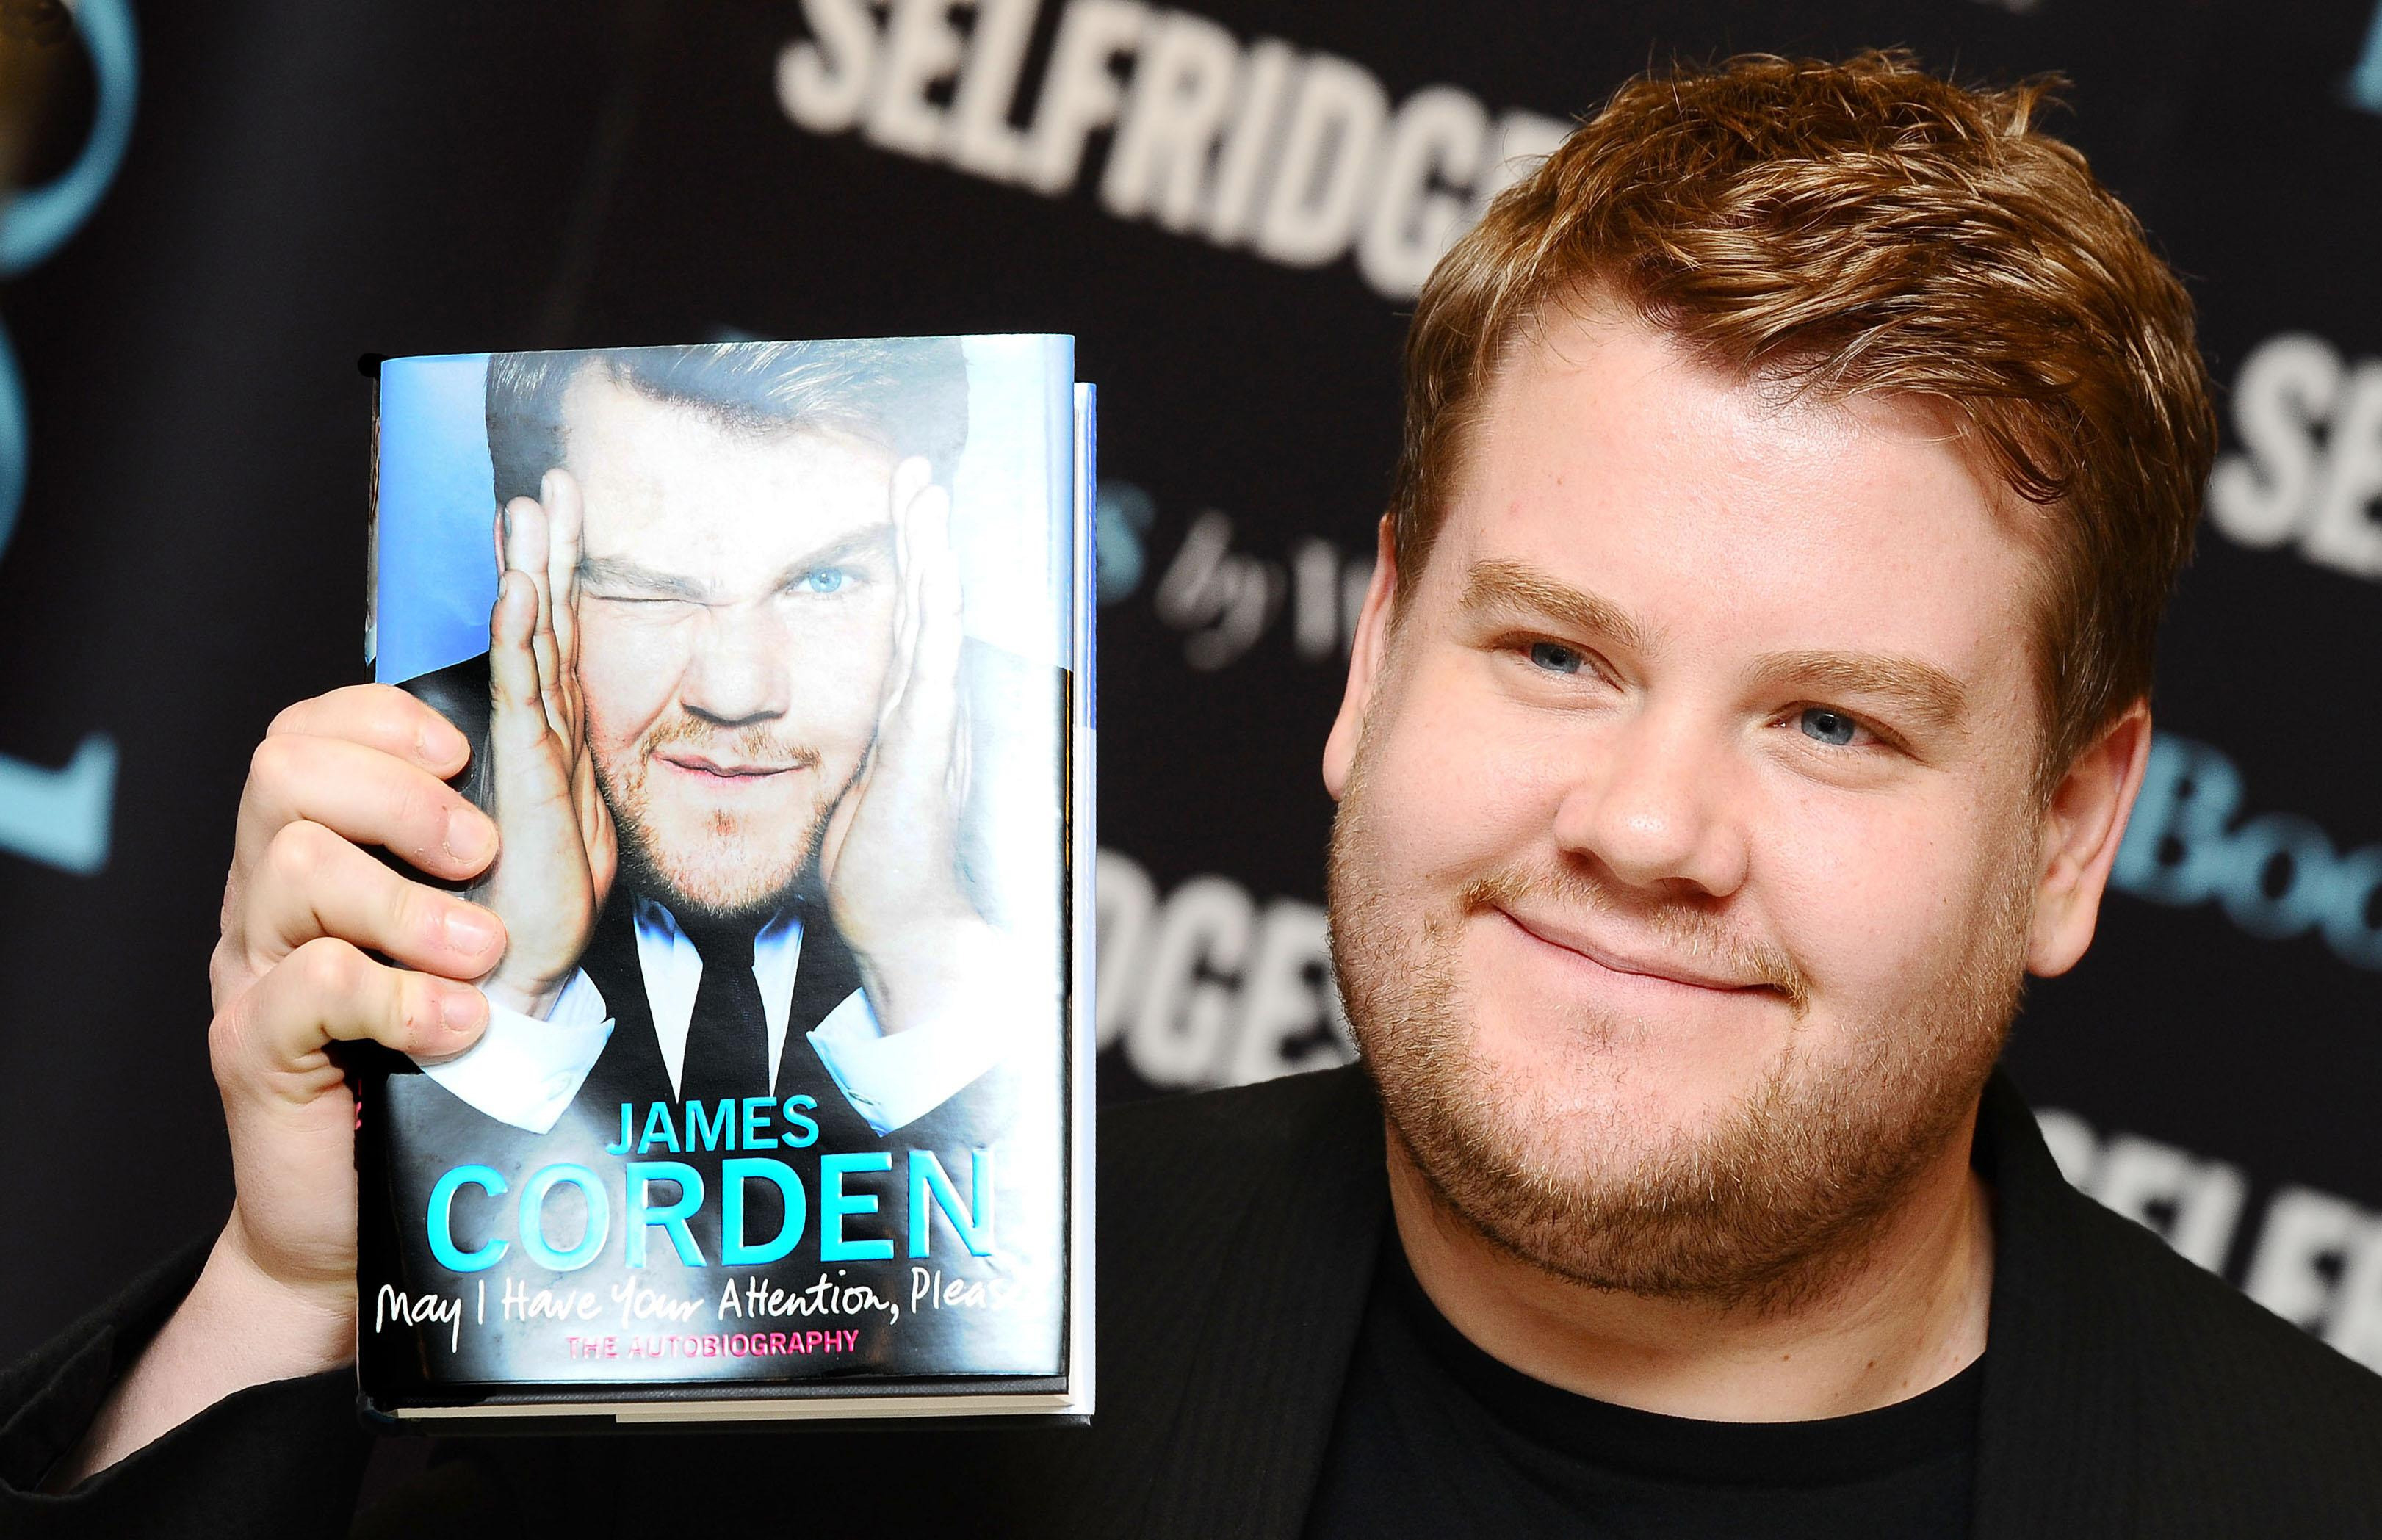 James Corden with his understated autobiography. Credit: PA